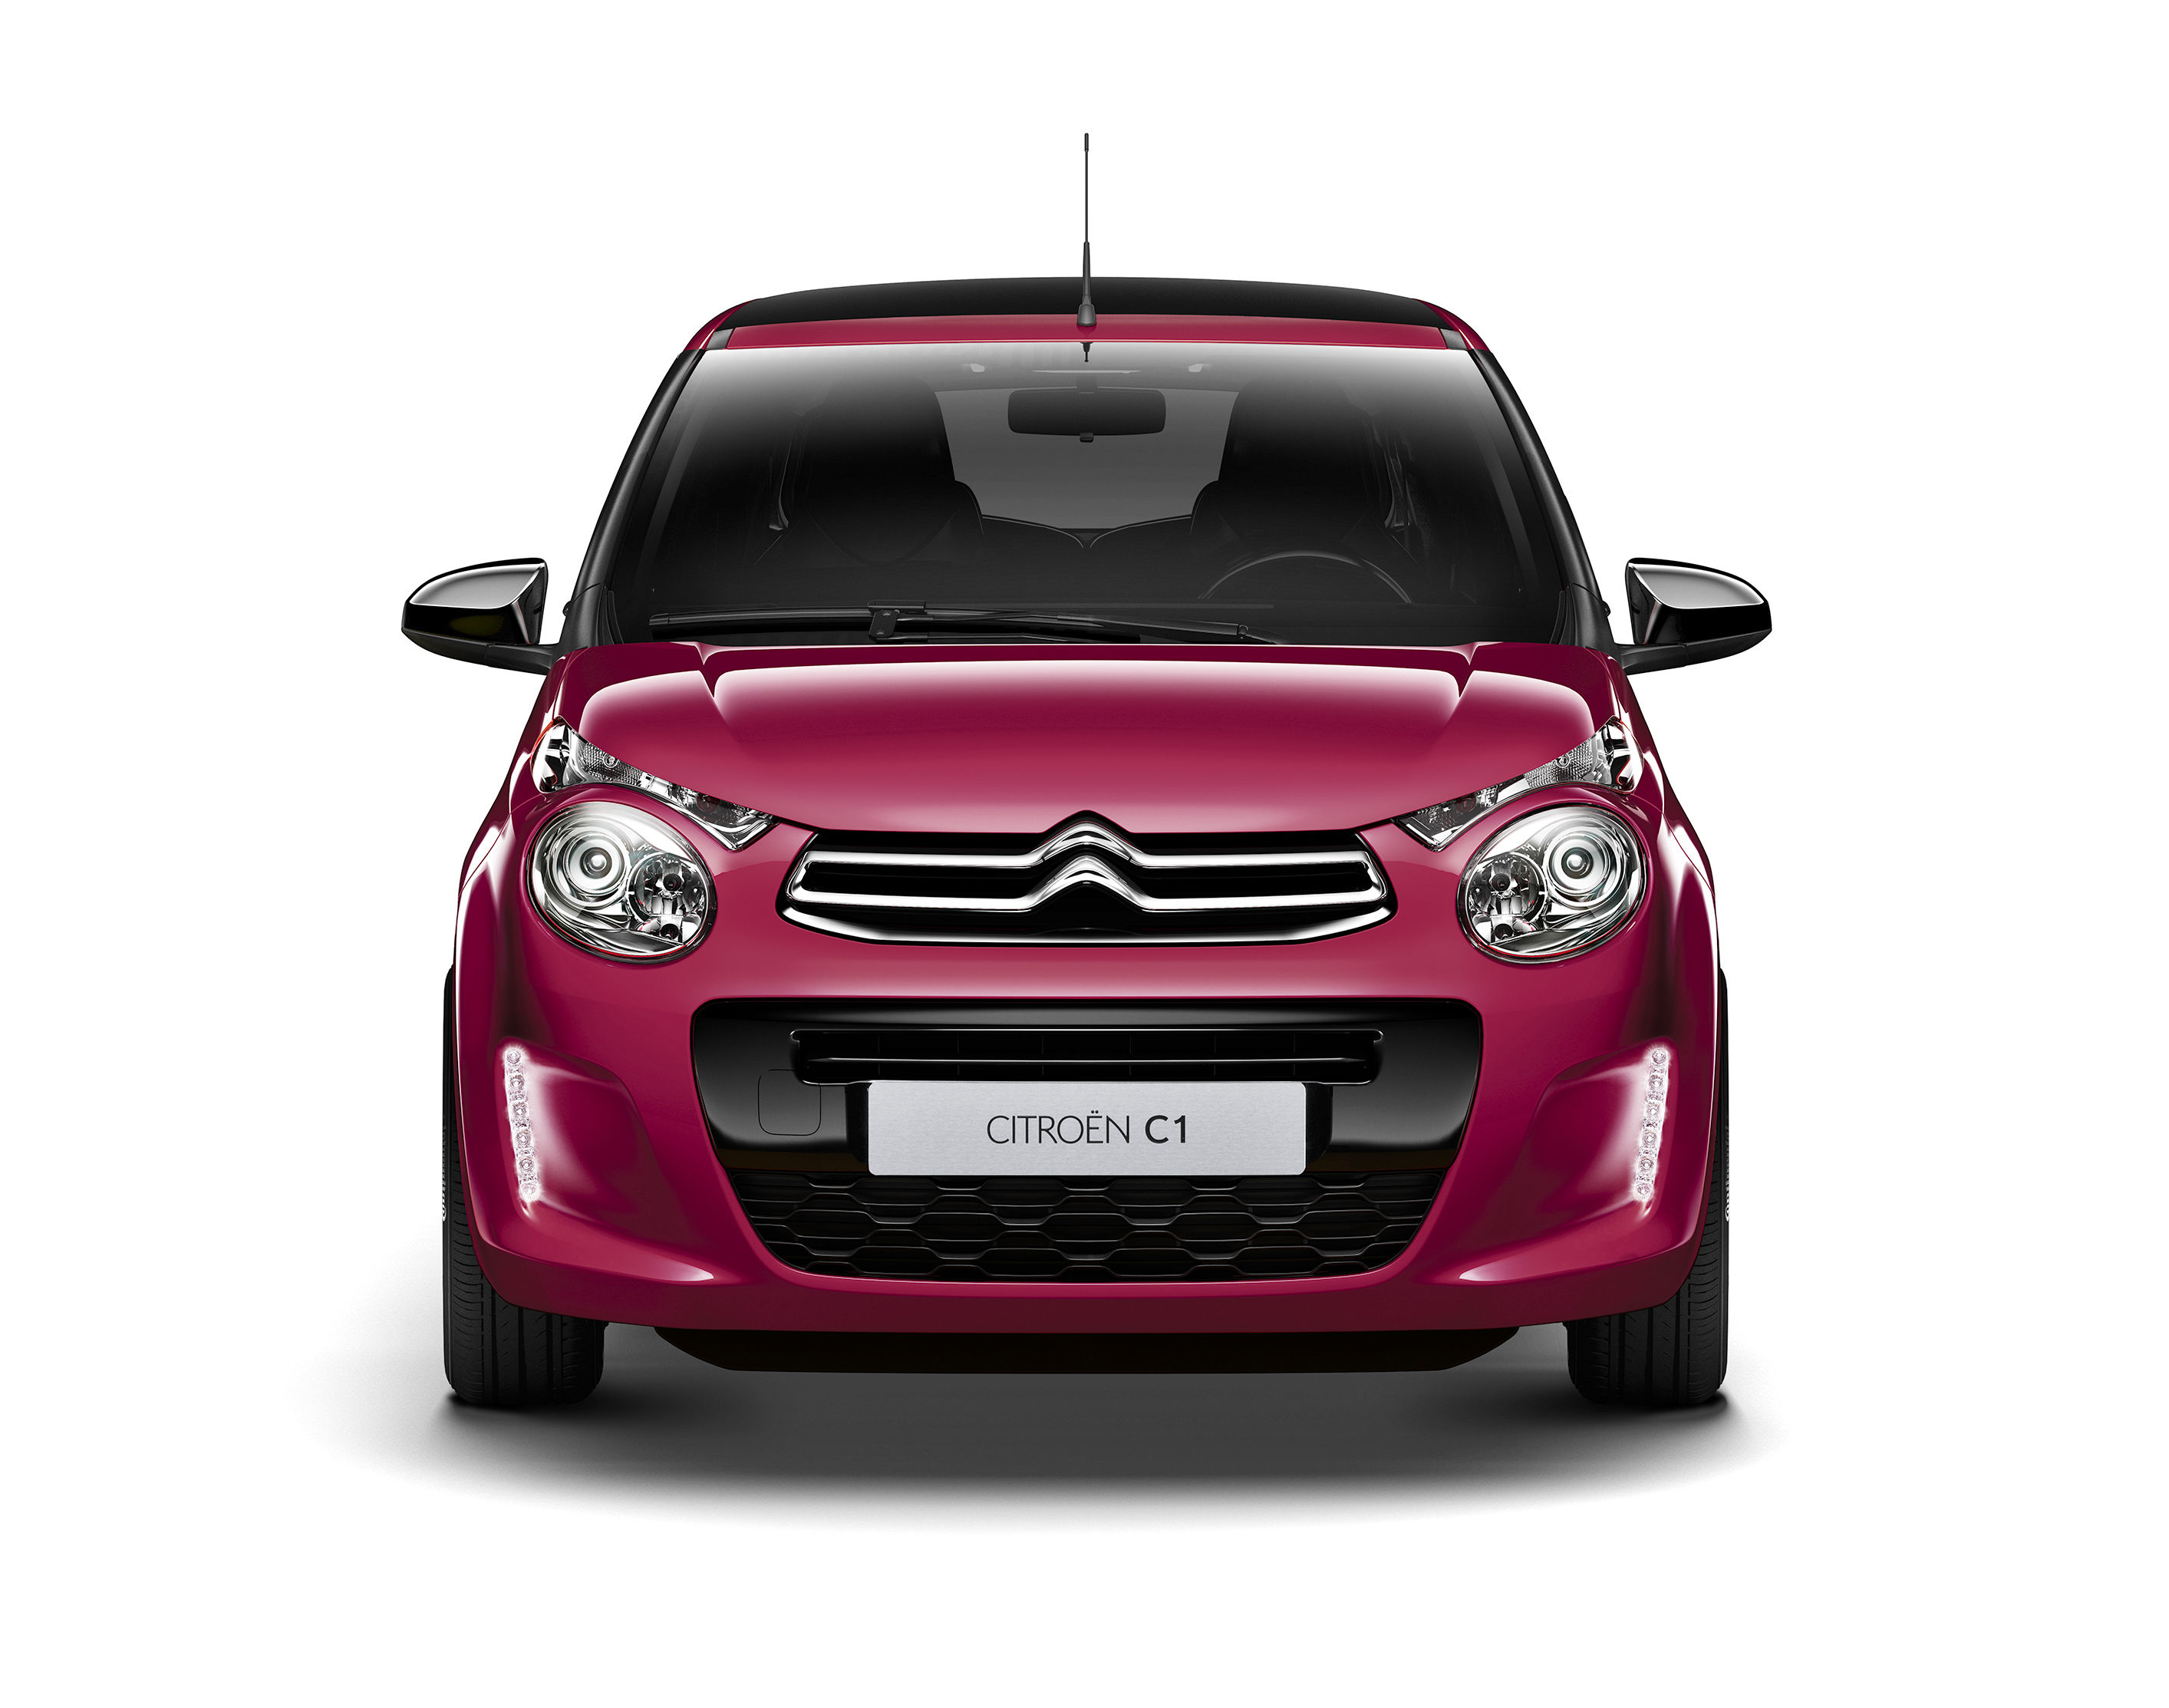 EL CITROËN C1, CON SILUETAS BERLINA Y DESCAPOTABLE, ESTRENA ACABADO FEEL EDITION Y COLOR JELLY BERRY OPACO